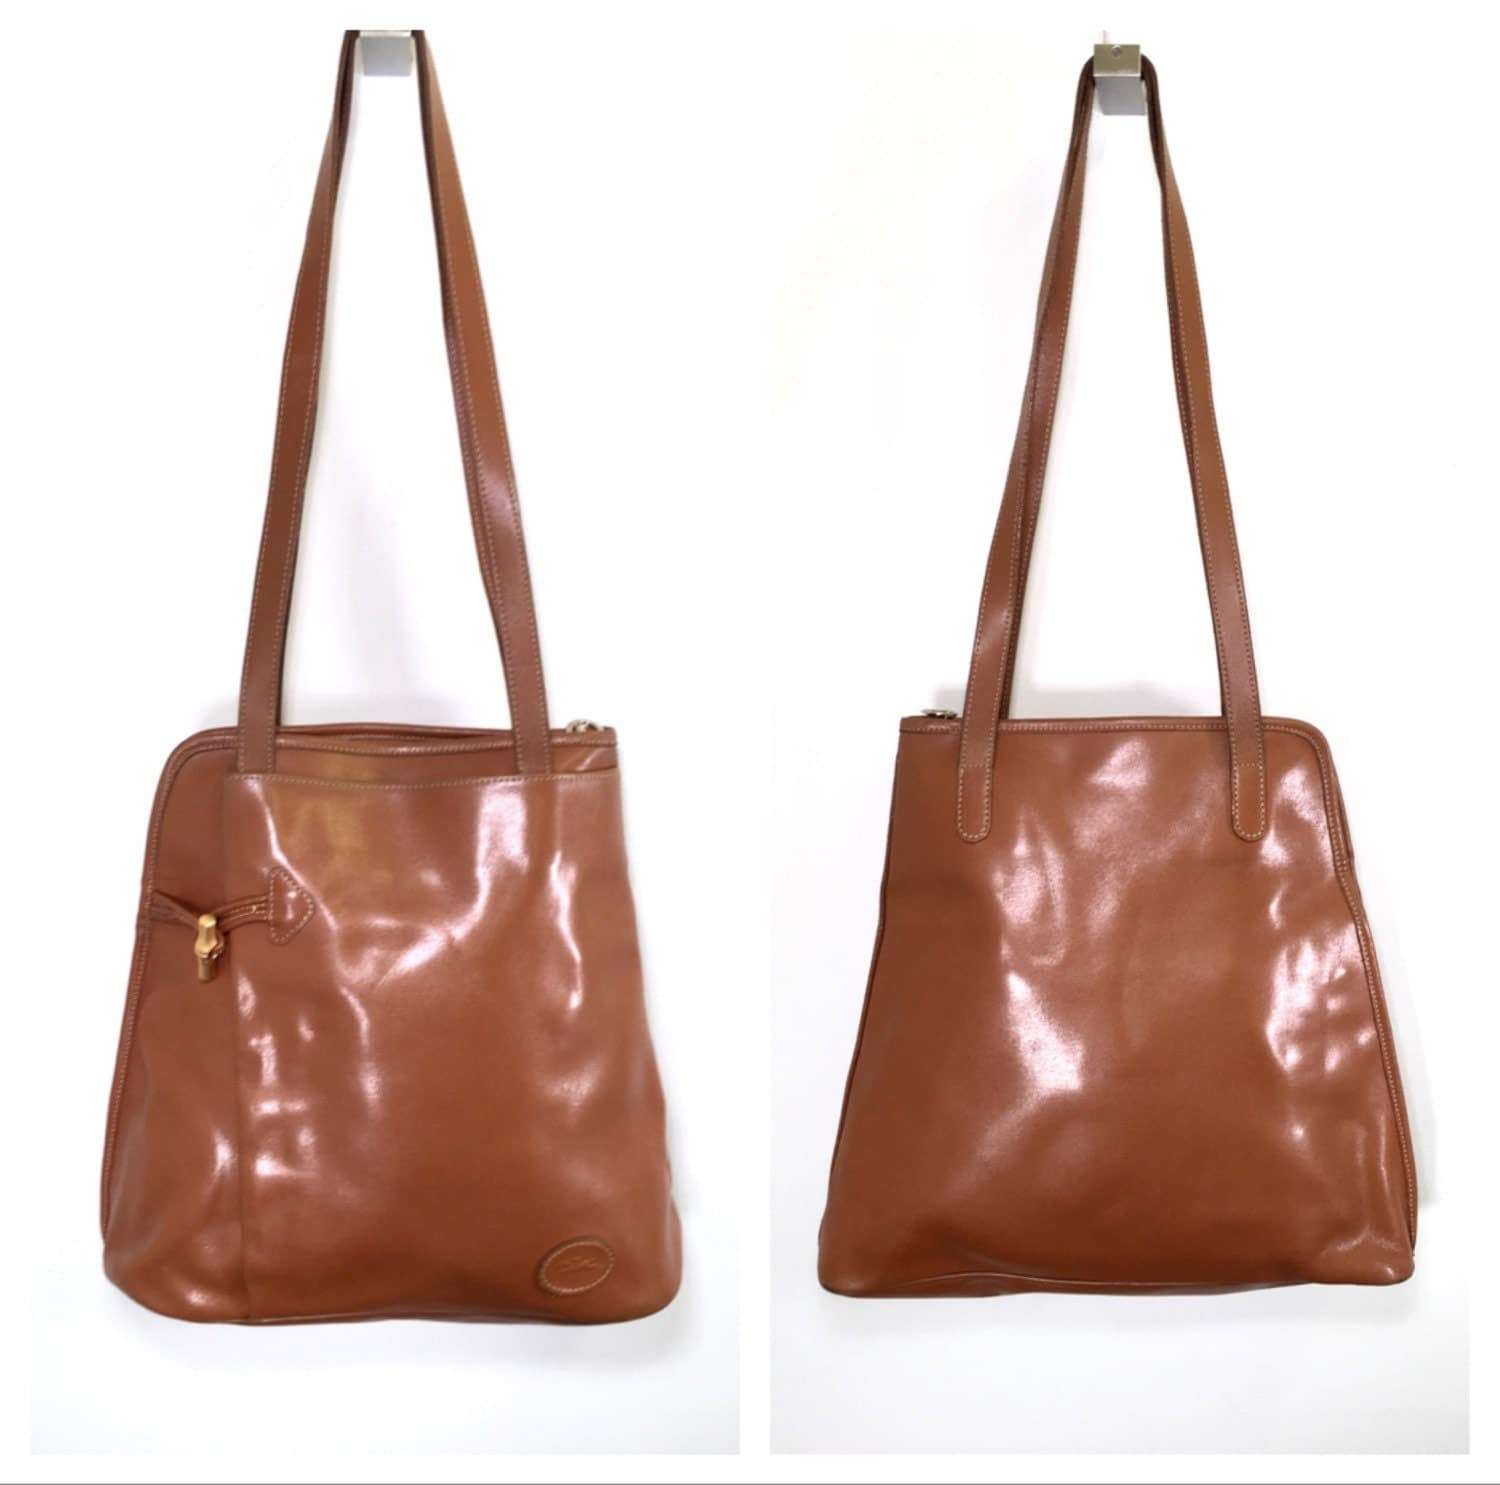 ... 1990 Longchamp Bag Brown Leather Longchamp France Large Longchamp Vinyl Handbag Book Bag Shoulder Bag Satchel ...